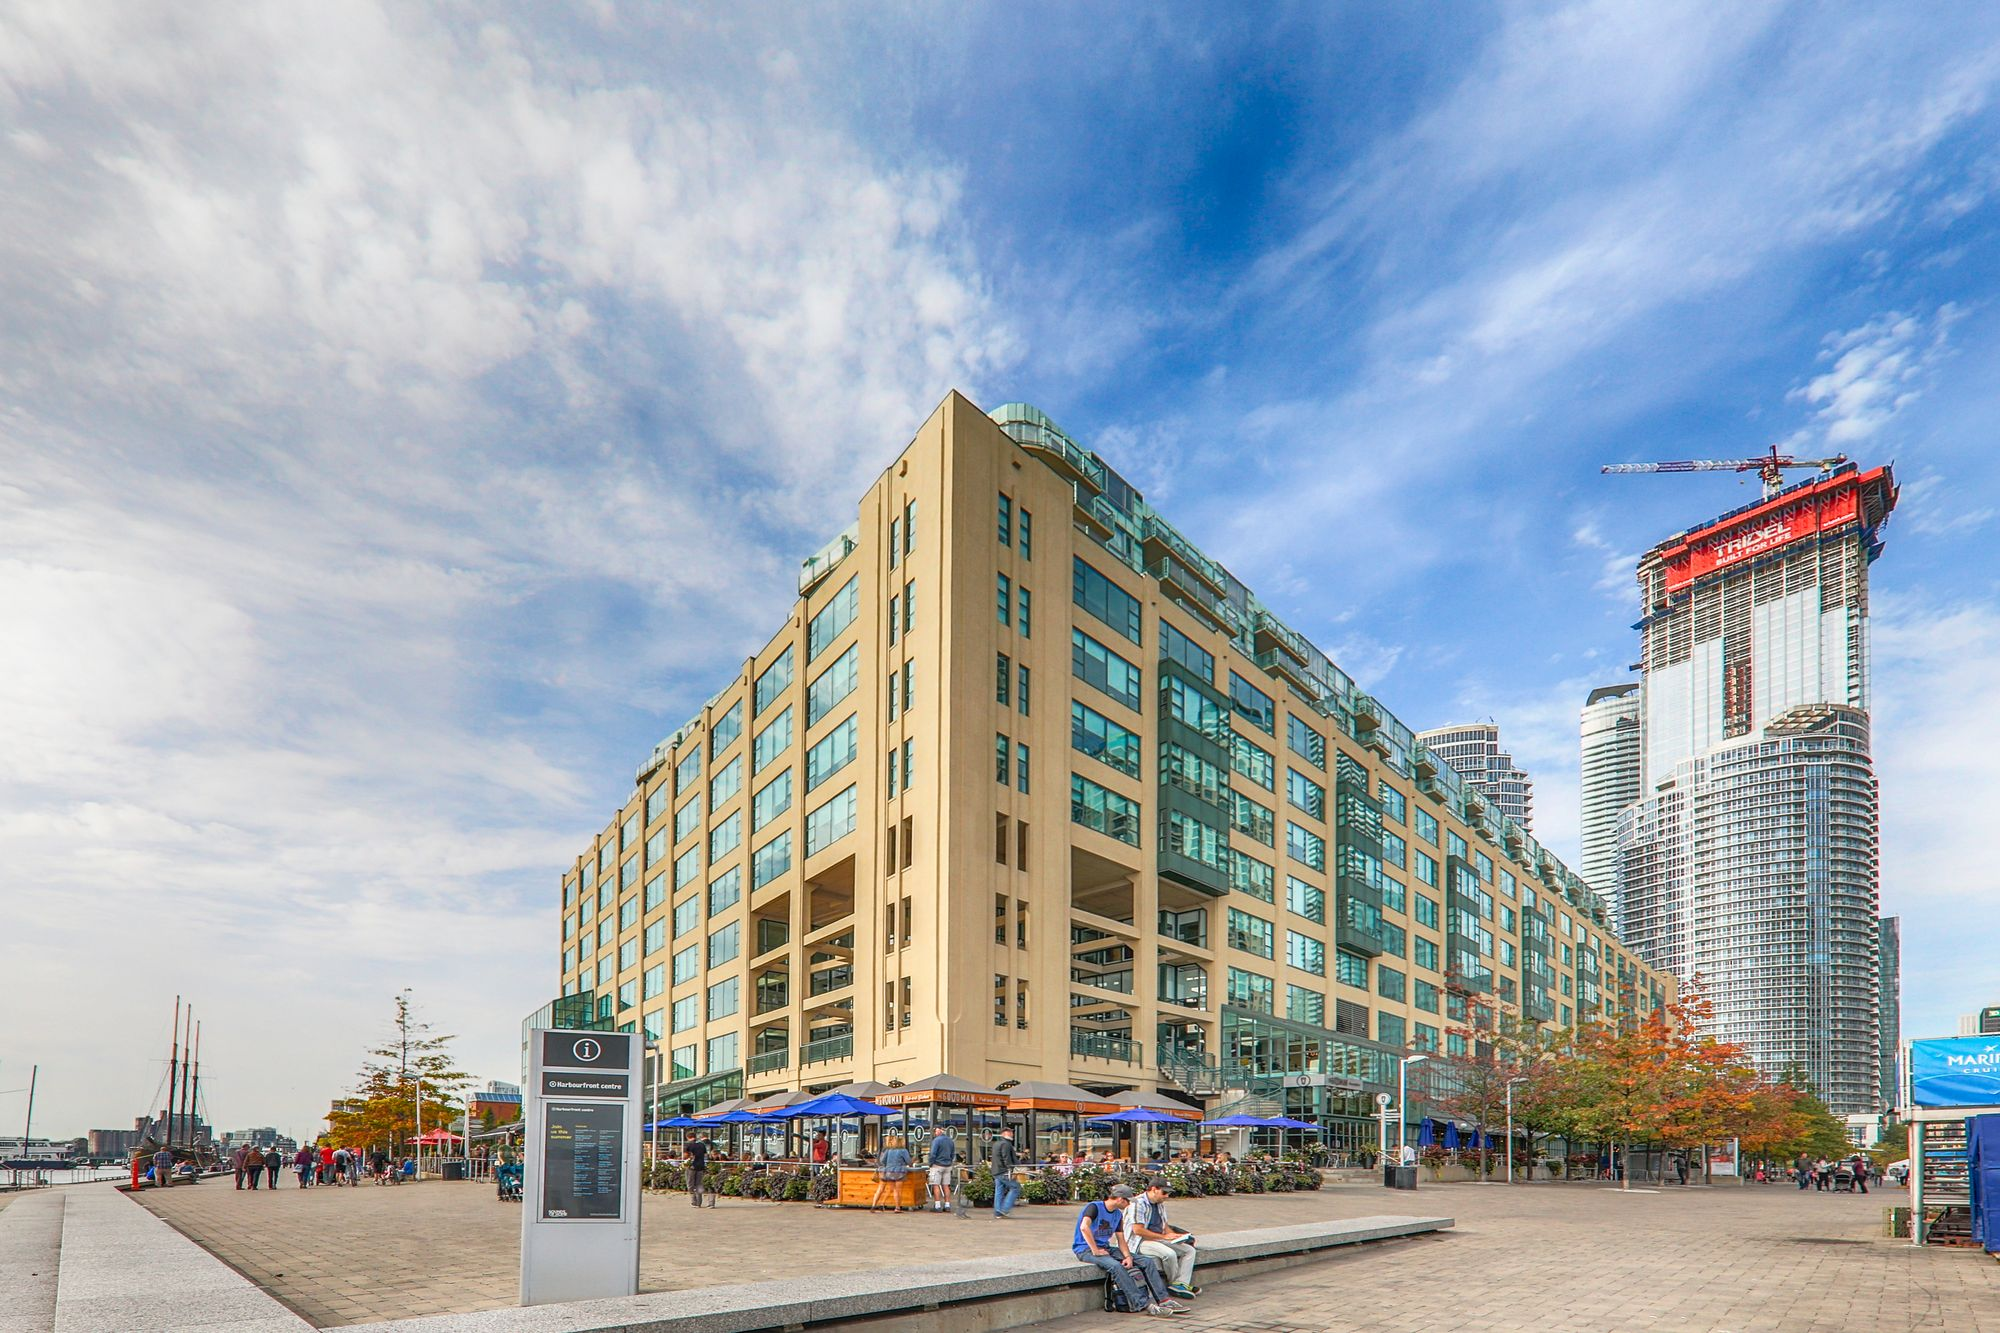 Queens Quay Terminal at 211 Queens Quay W. This condo is located in  Downtown, Toronto - image #1 of 4 by Strata.ca